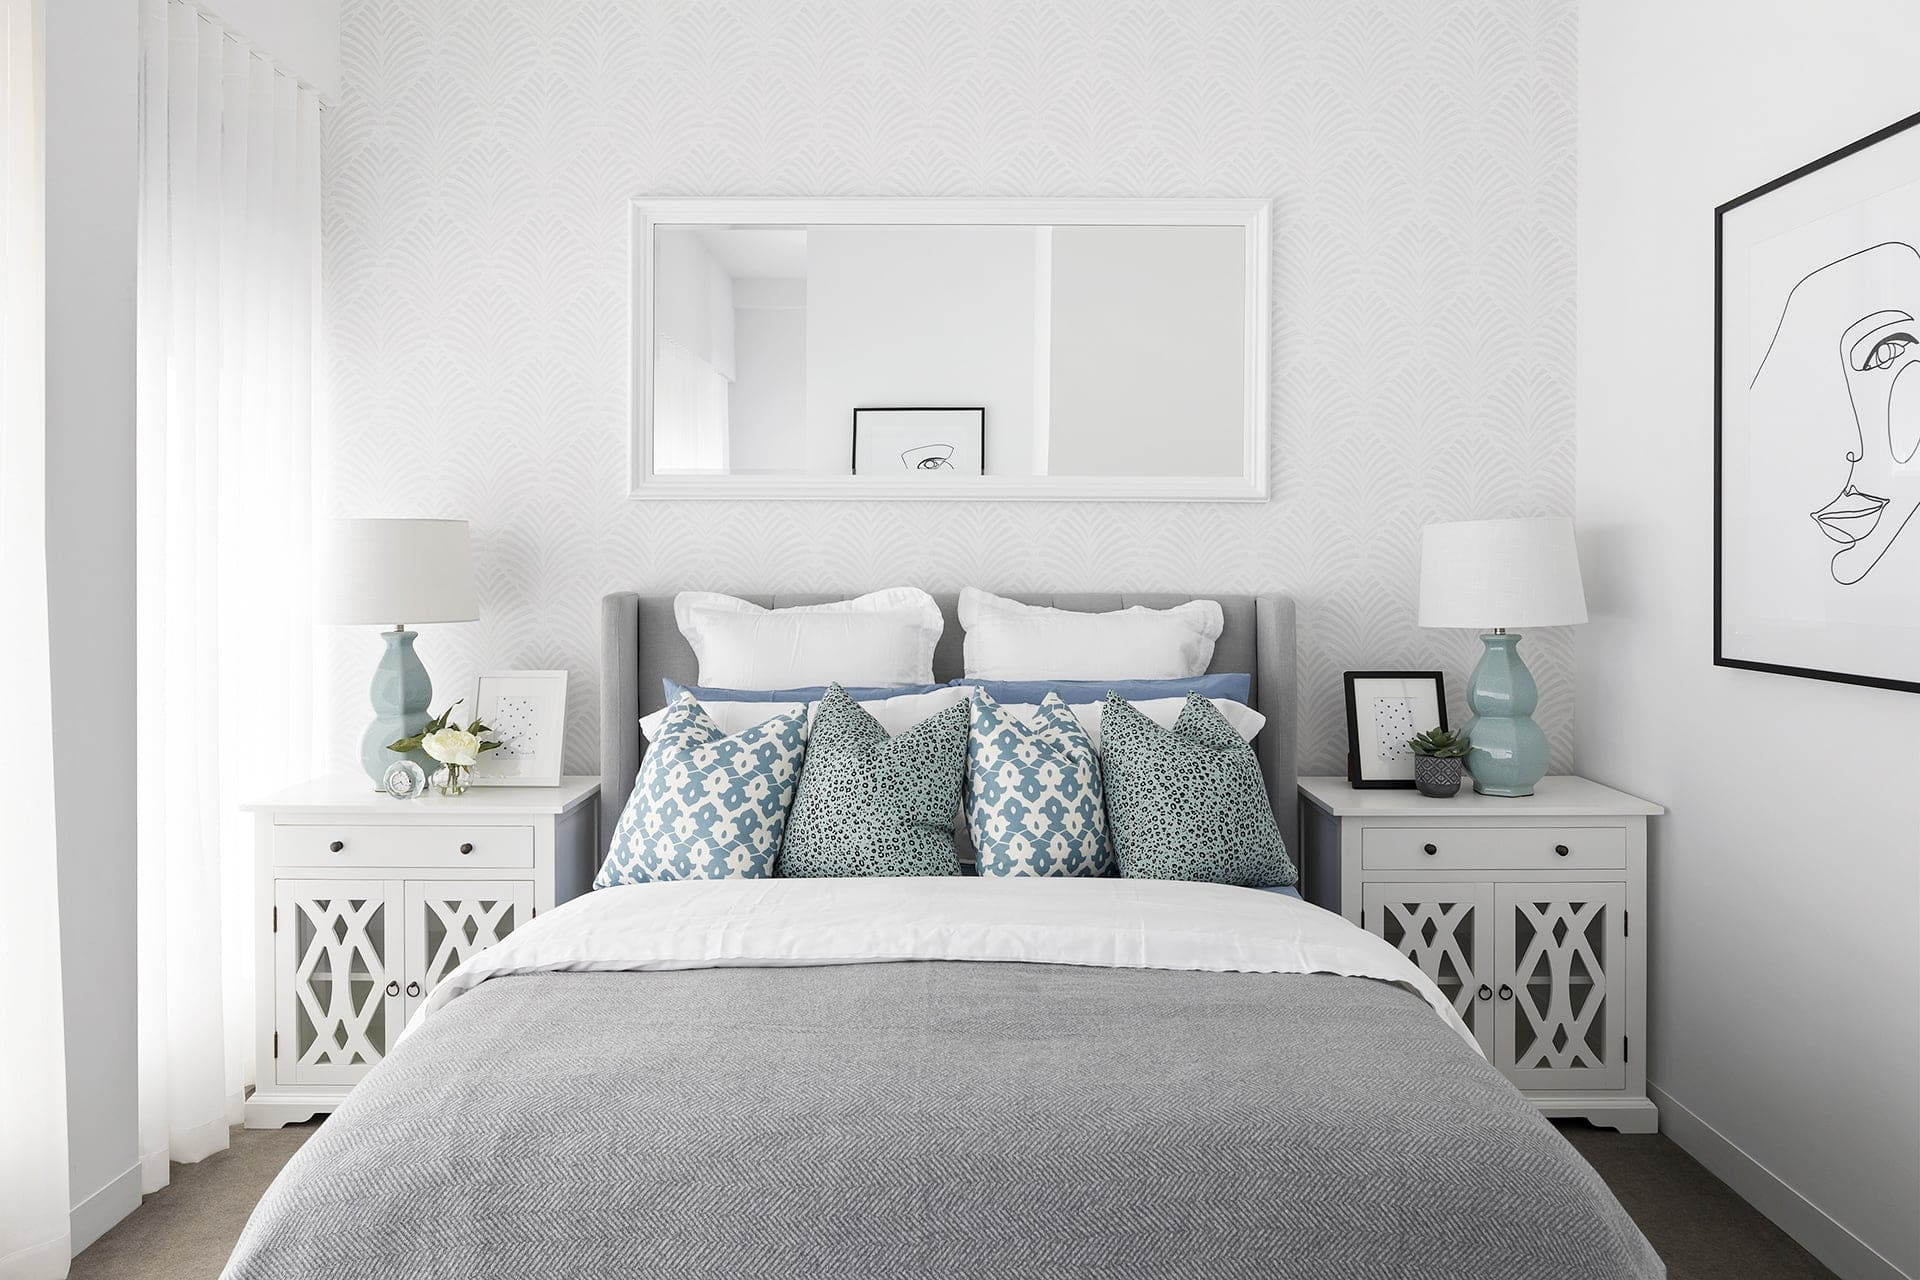 hamptons style master bedroom with white bedside tables and mirror above bed